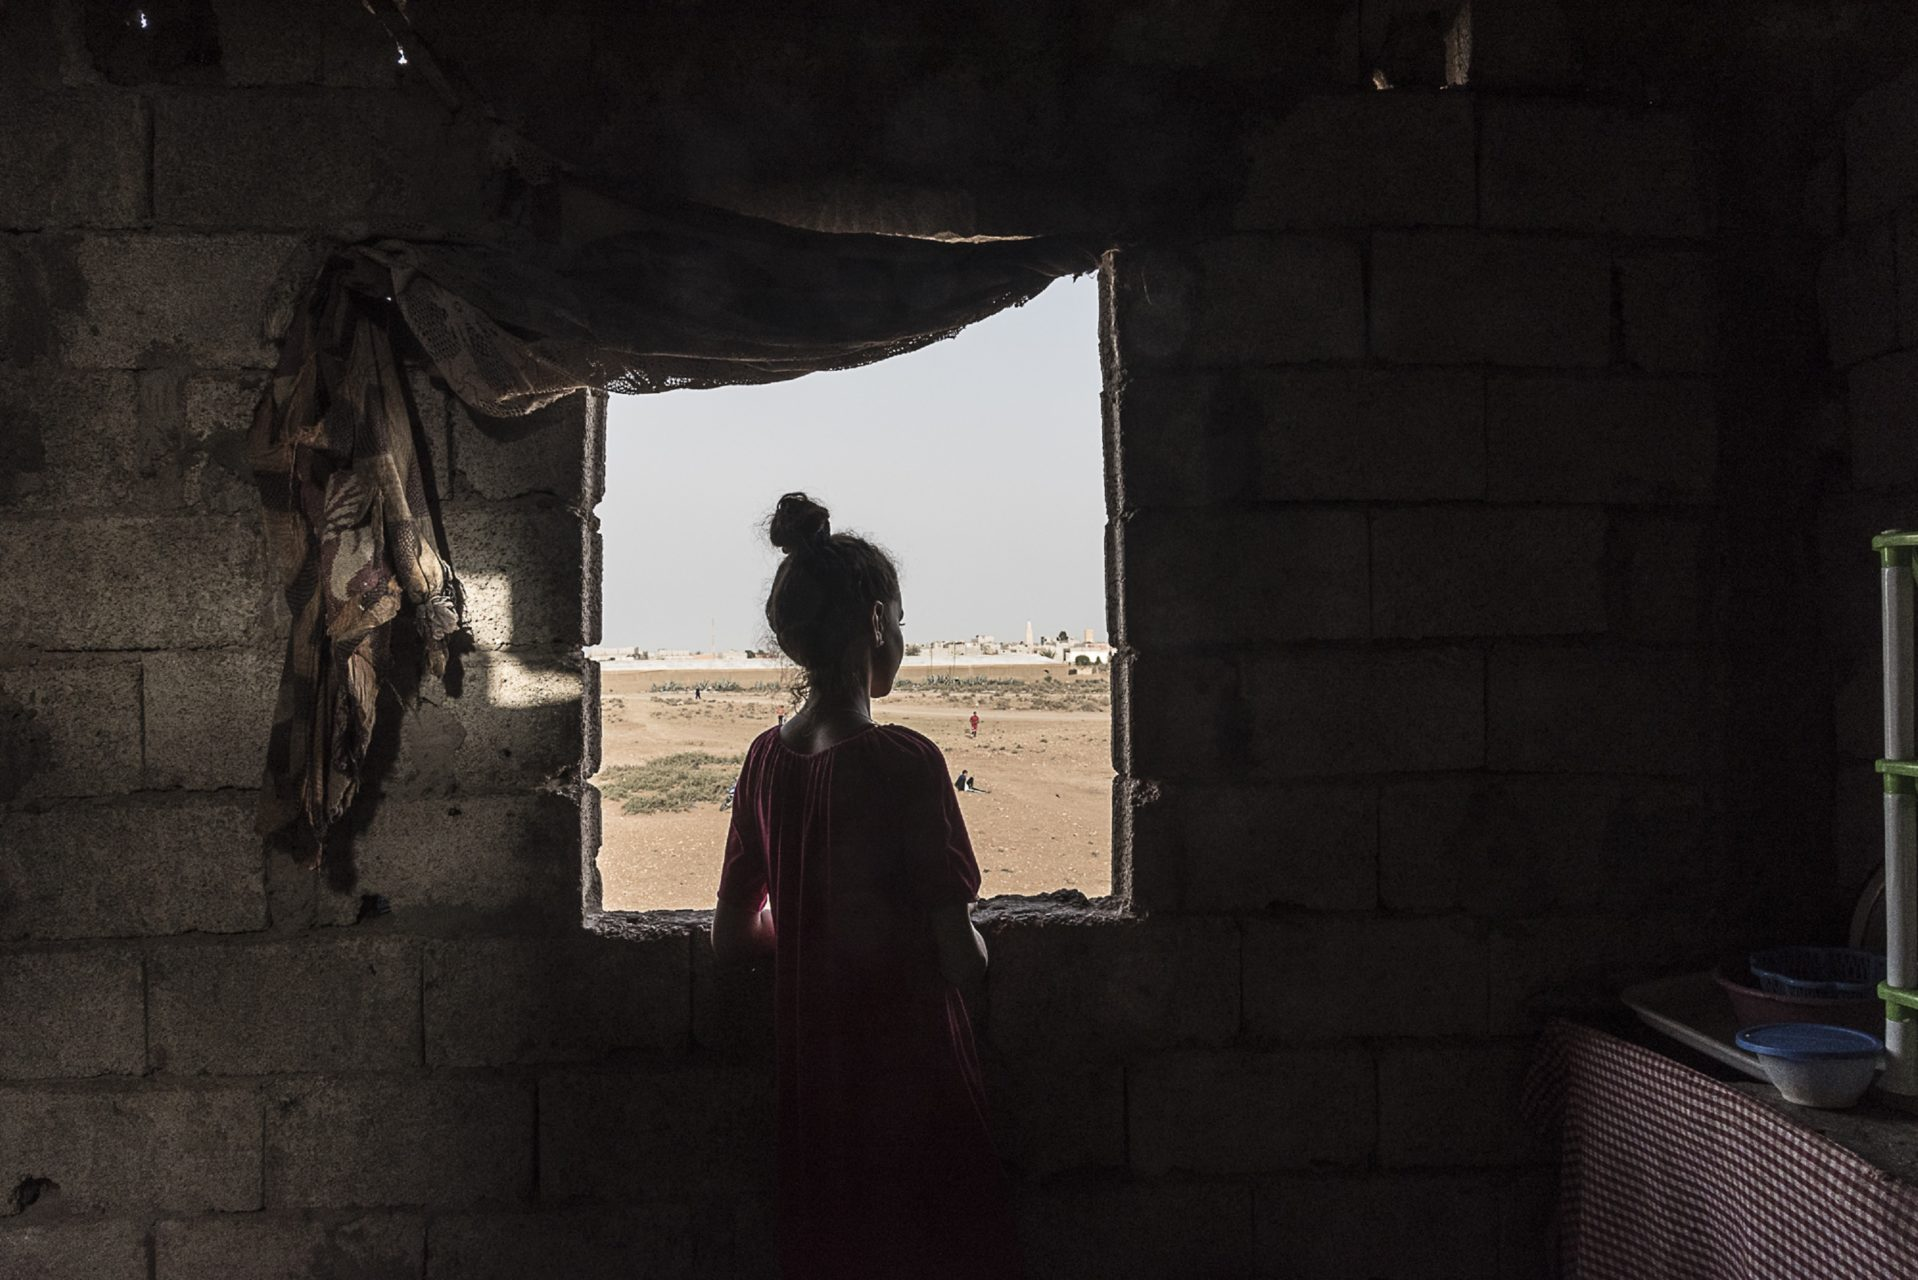 A young girl looks out the open window of a home